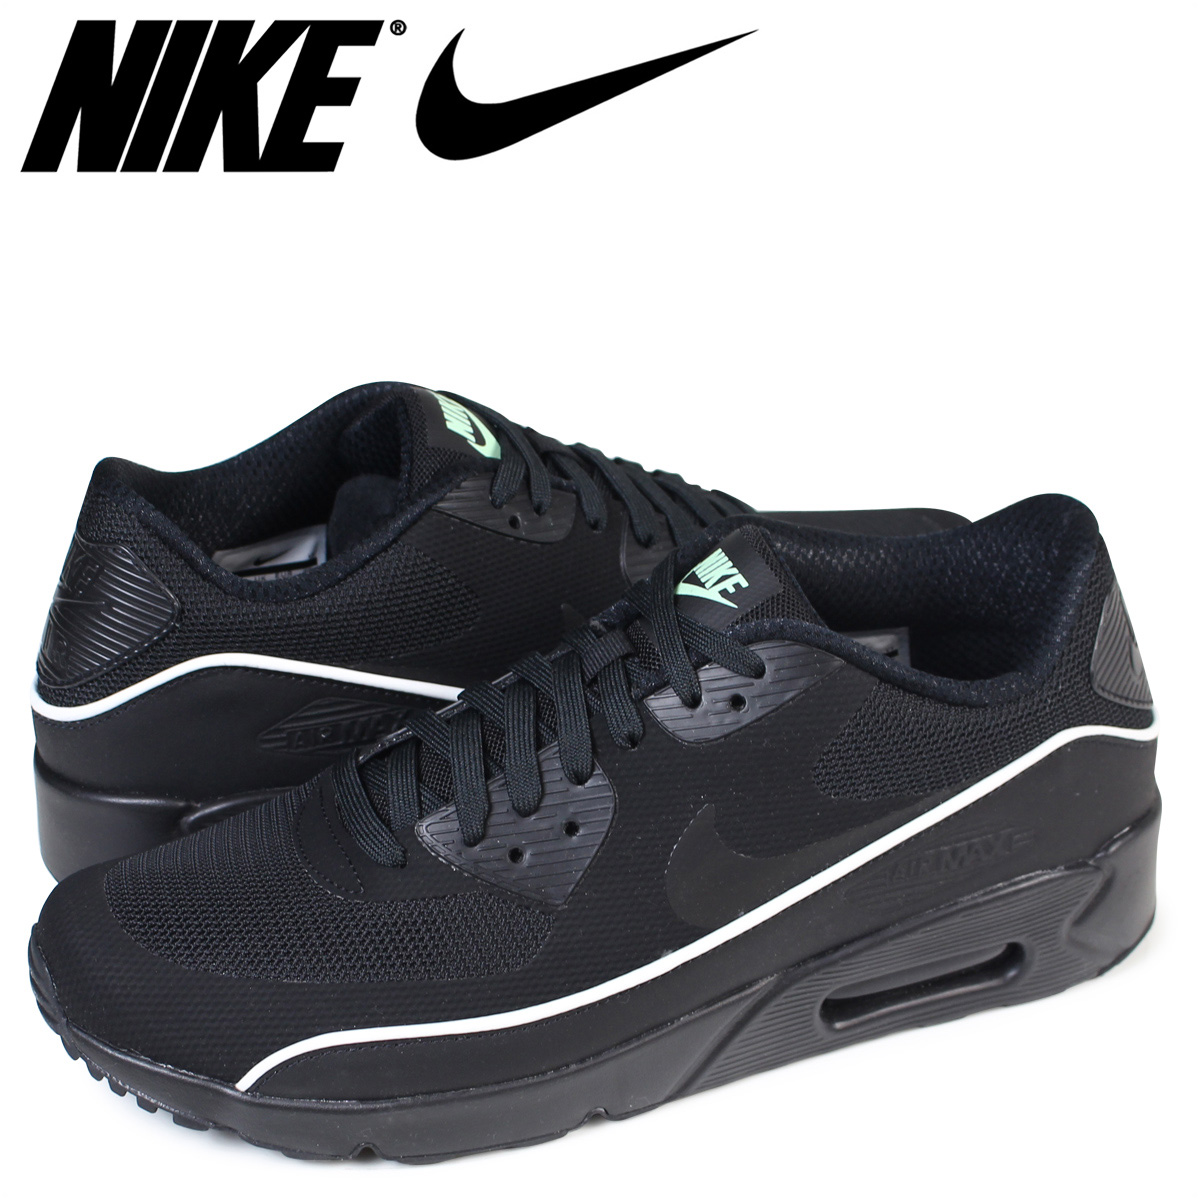 the latest a7e28 8a215 Nike NIKE Air Max 90 essential ultra sneakers AIR MAX 90 ULTRA 2.0  ESSENTIAL 875,695-009 men's shoes black [9/4 Shinnyu load]